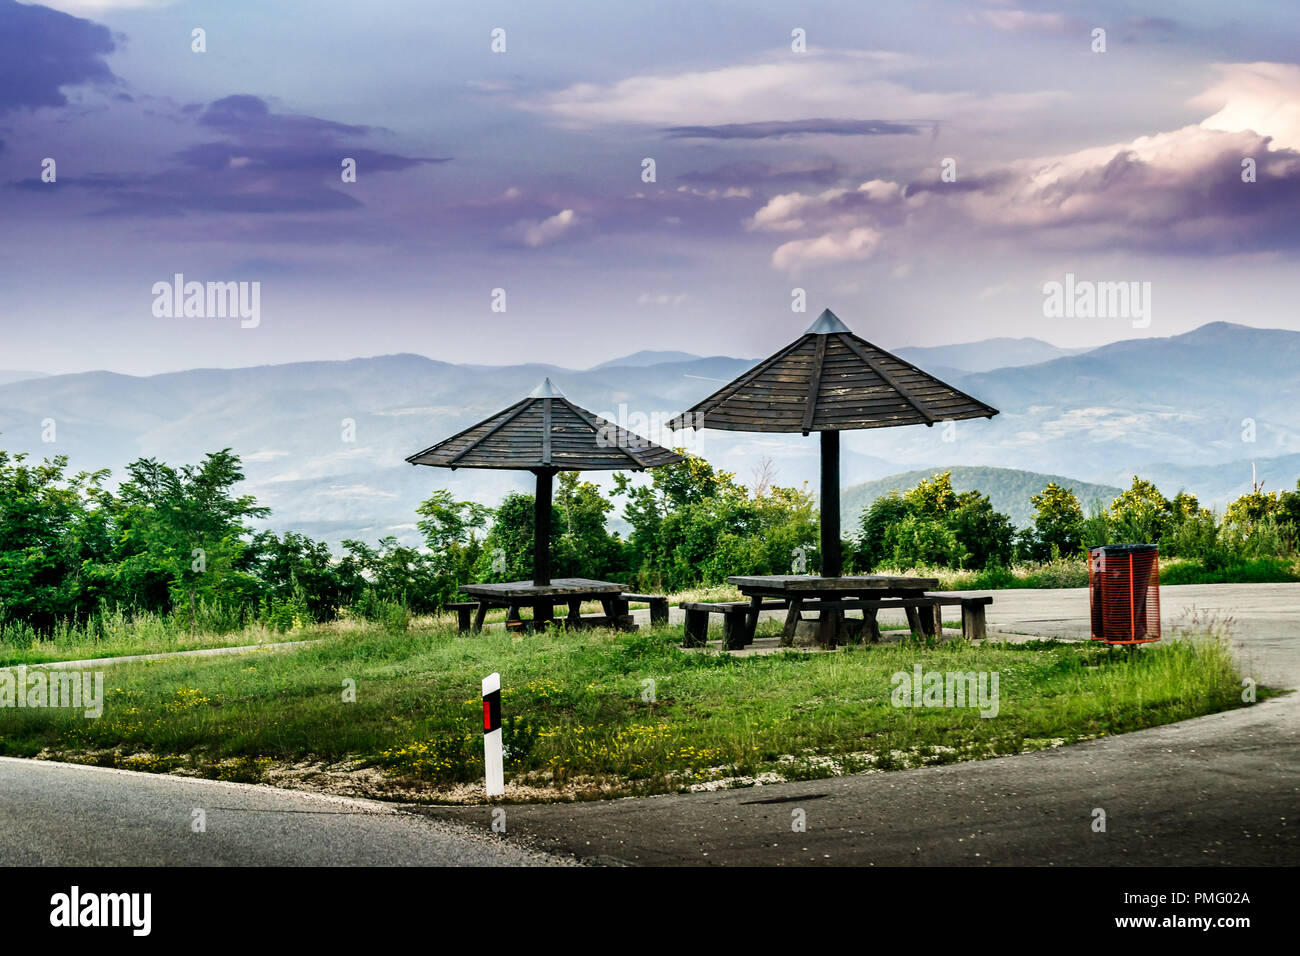 Resting place for drivers and travelers by the Mountain Road with the View - Stock Image